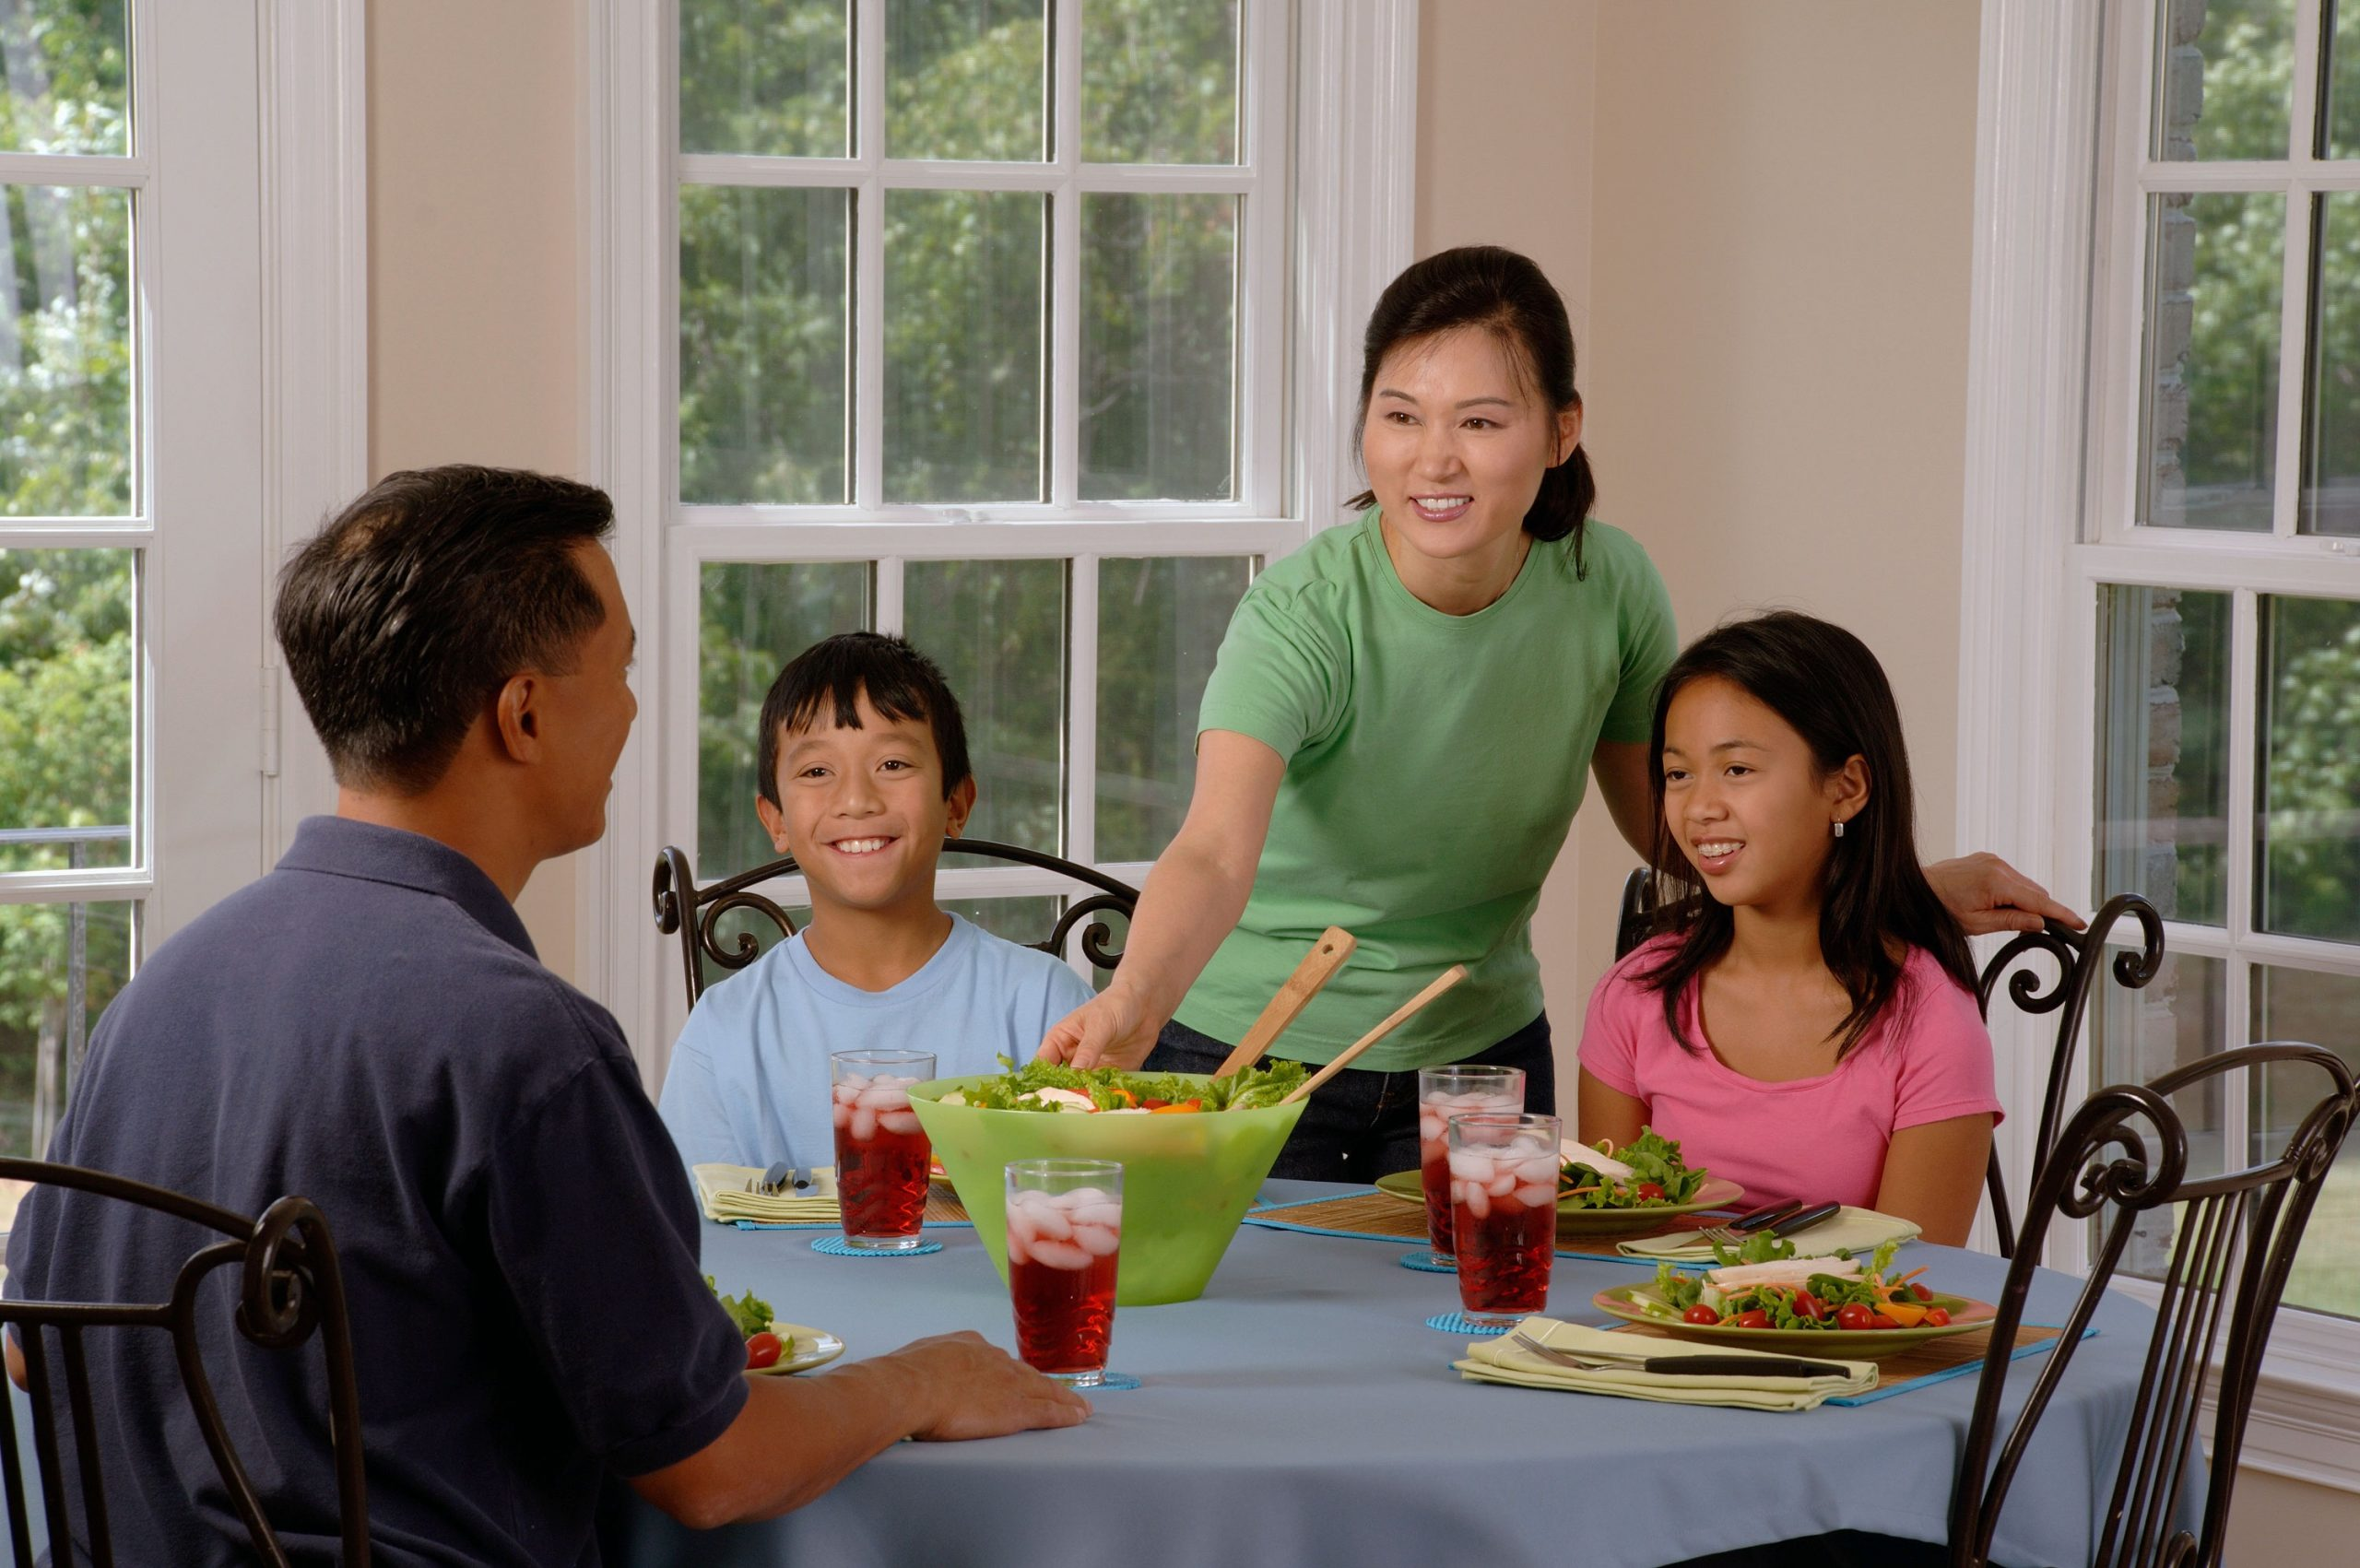 After lockdown, families plan on reviving Sunday family dinners - all days of the week